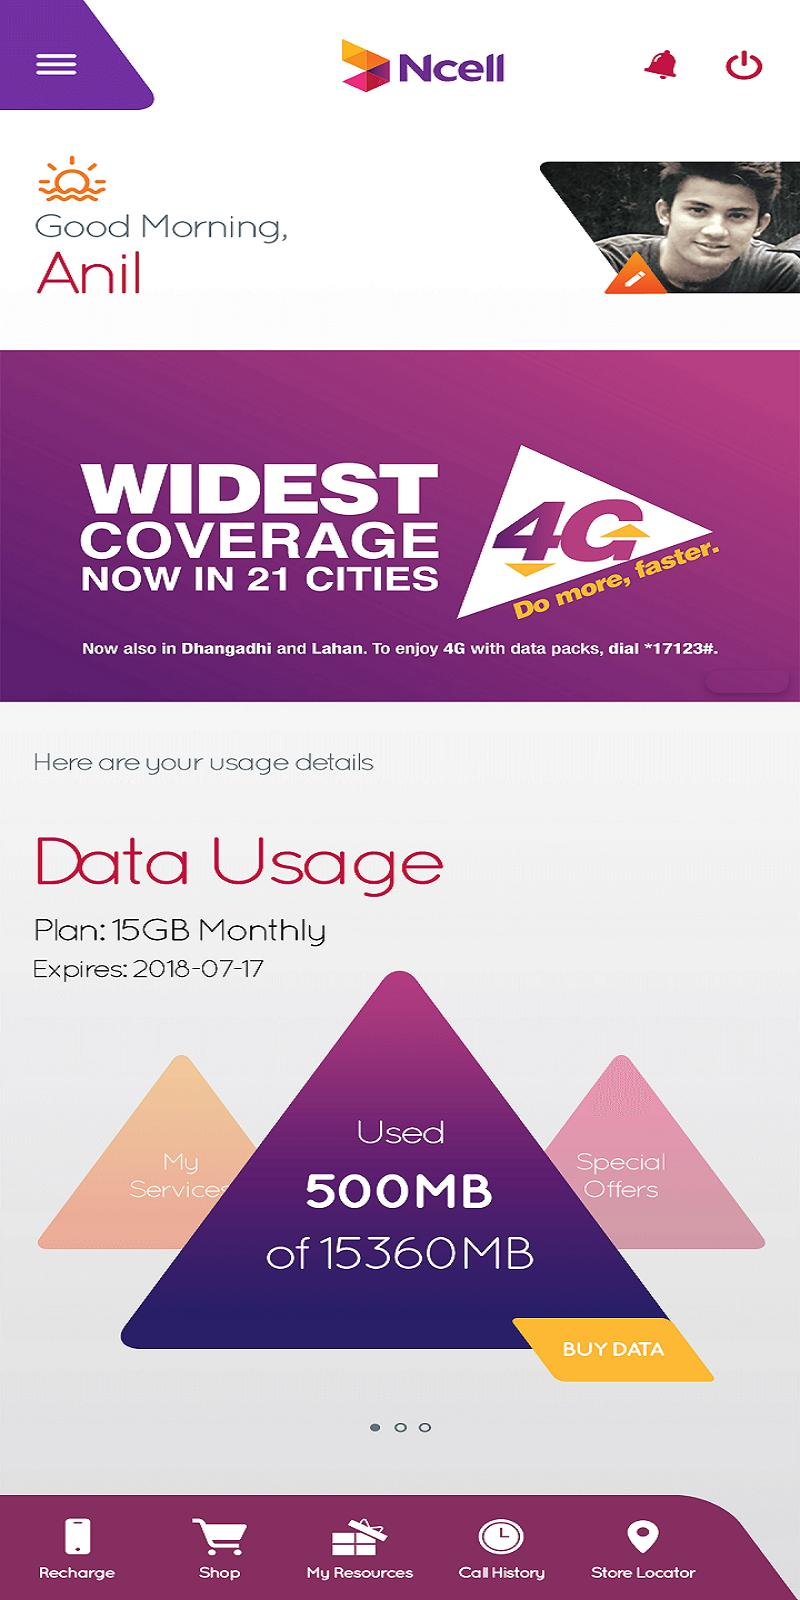 Ncell for Android - APK Download